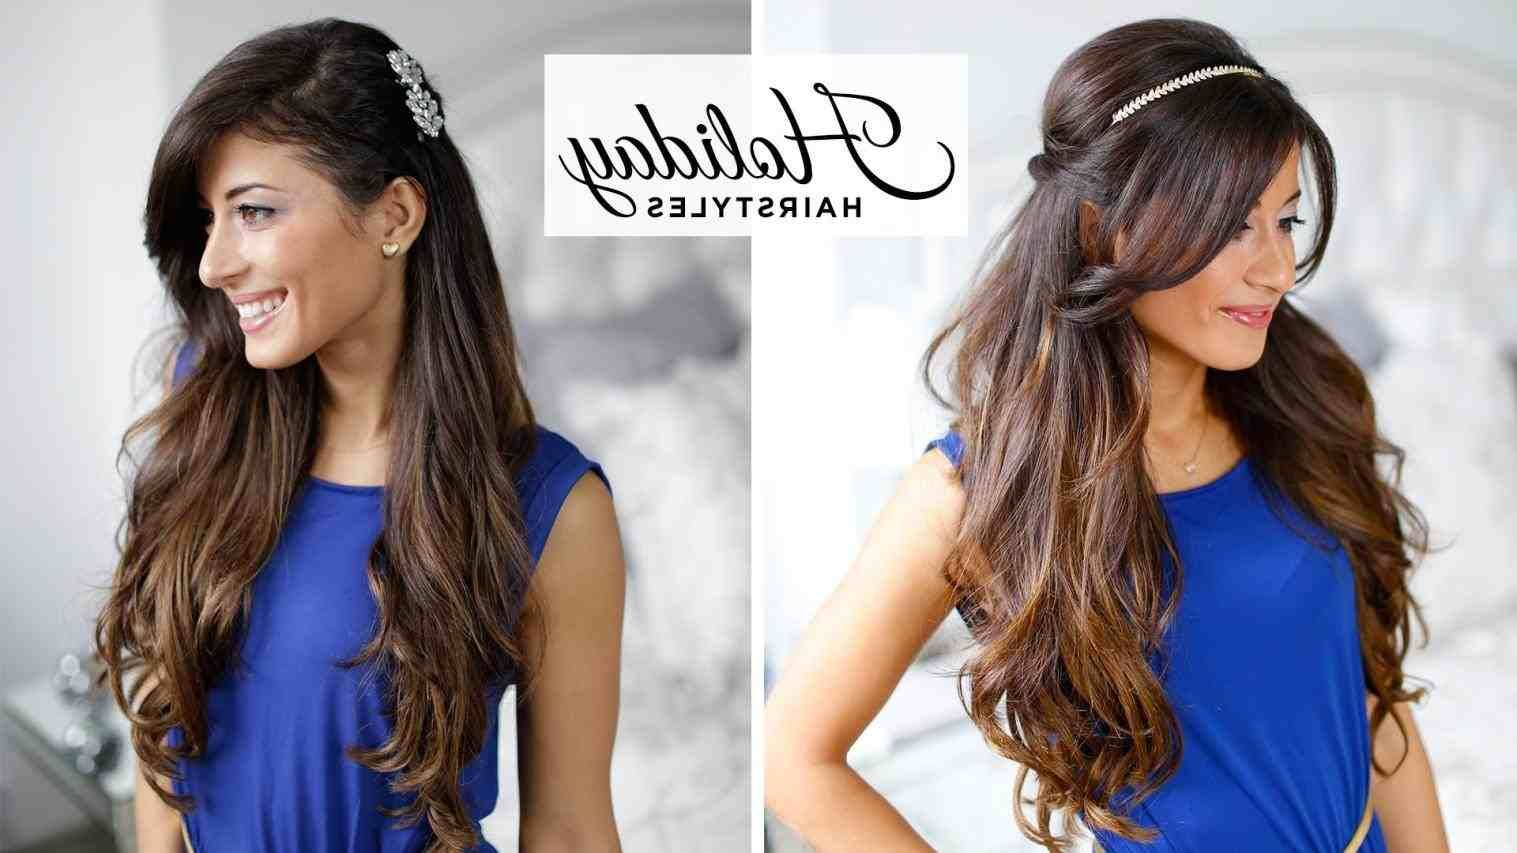 balayagehair.club -&nbspThis website is for sale